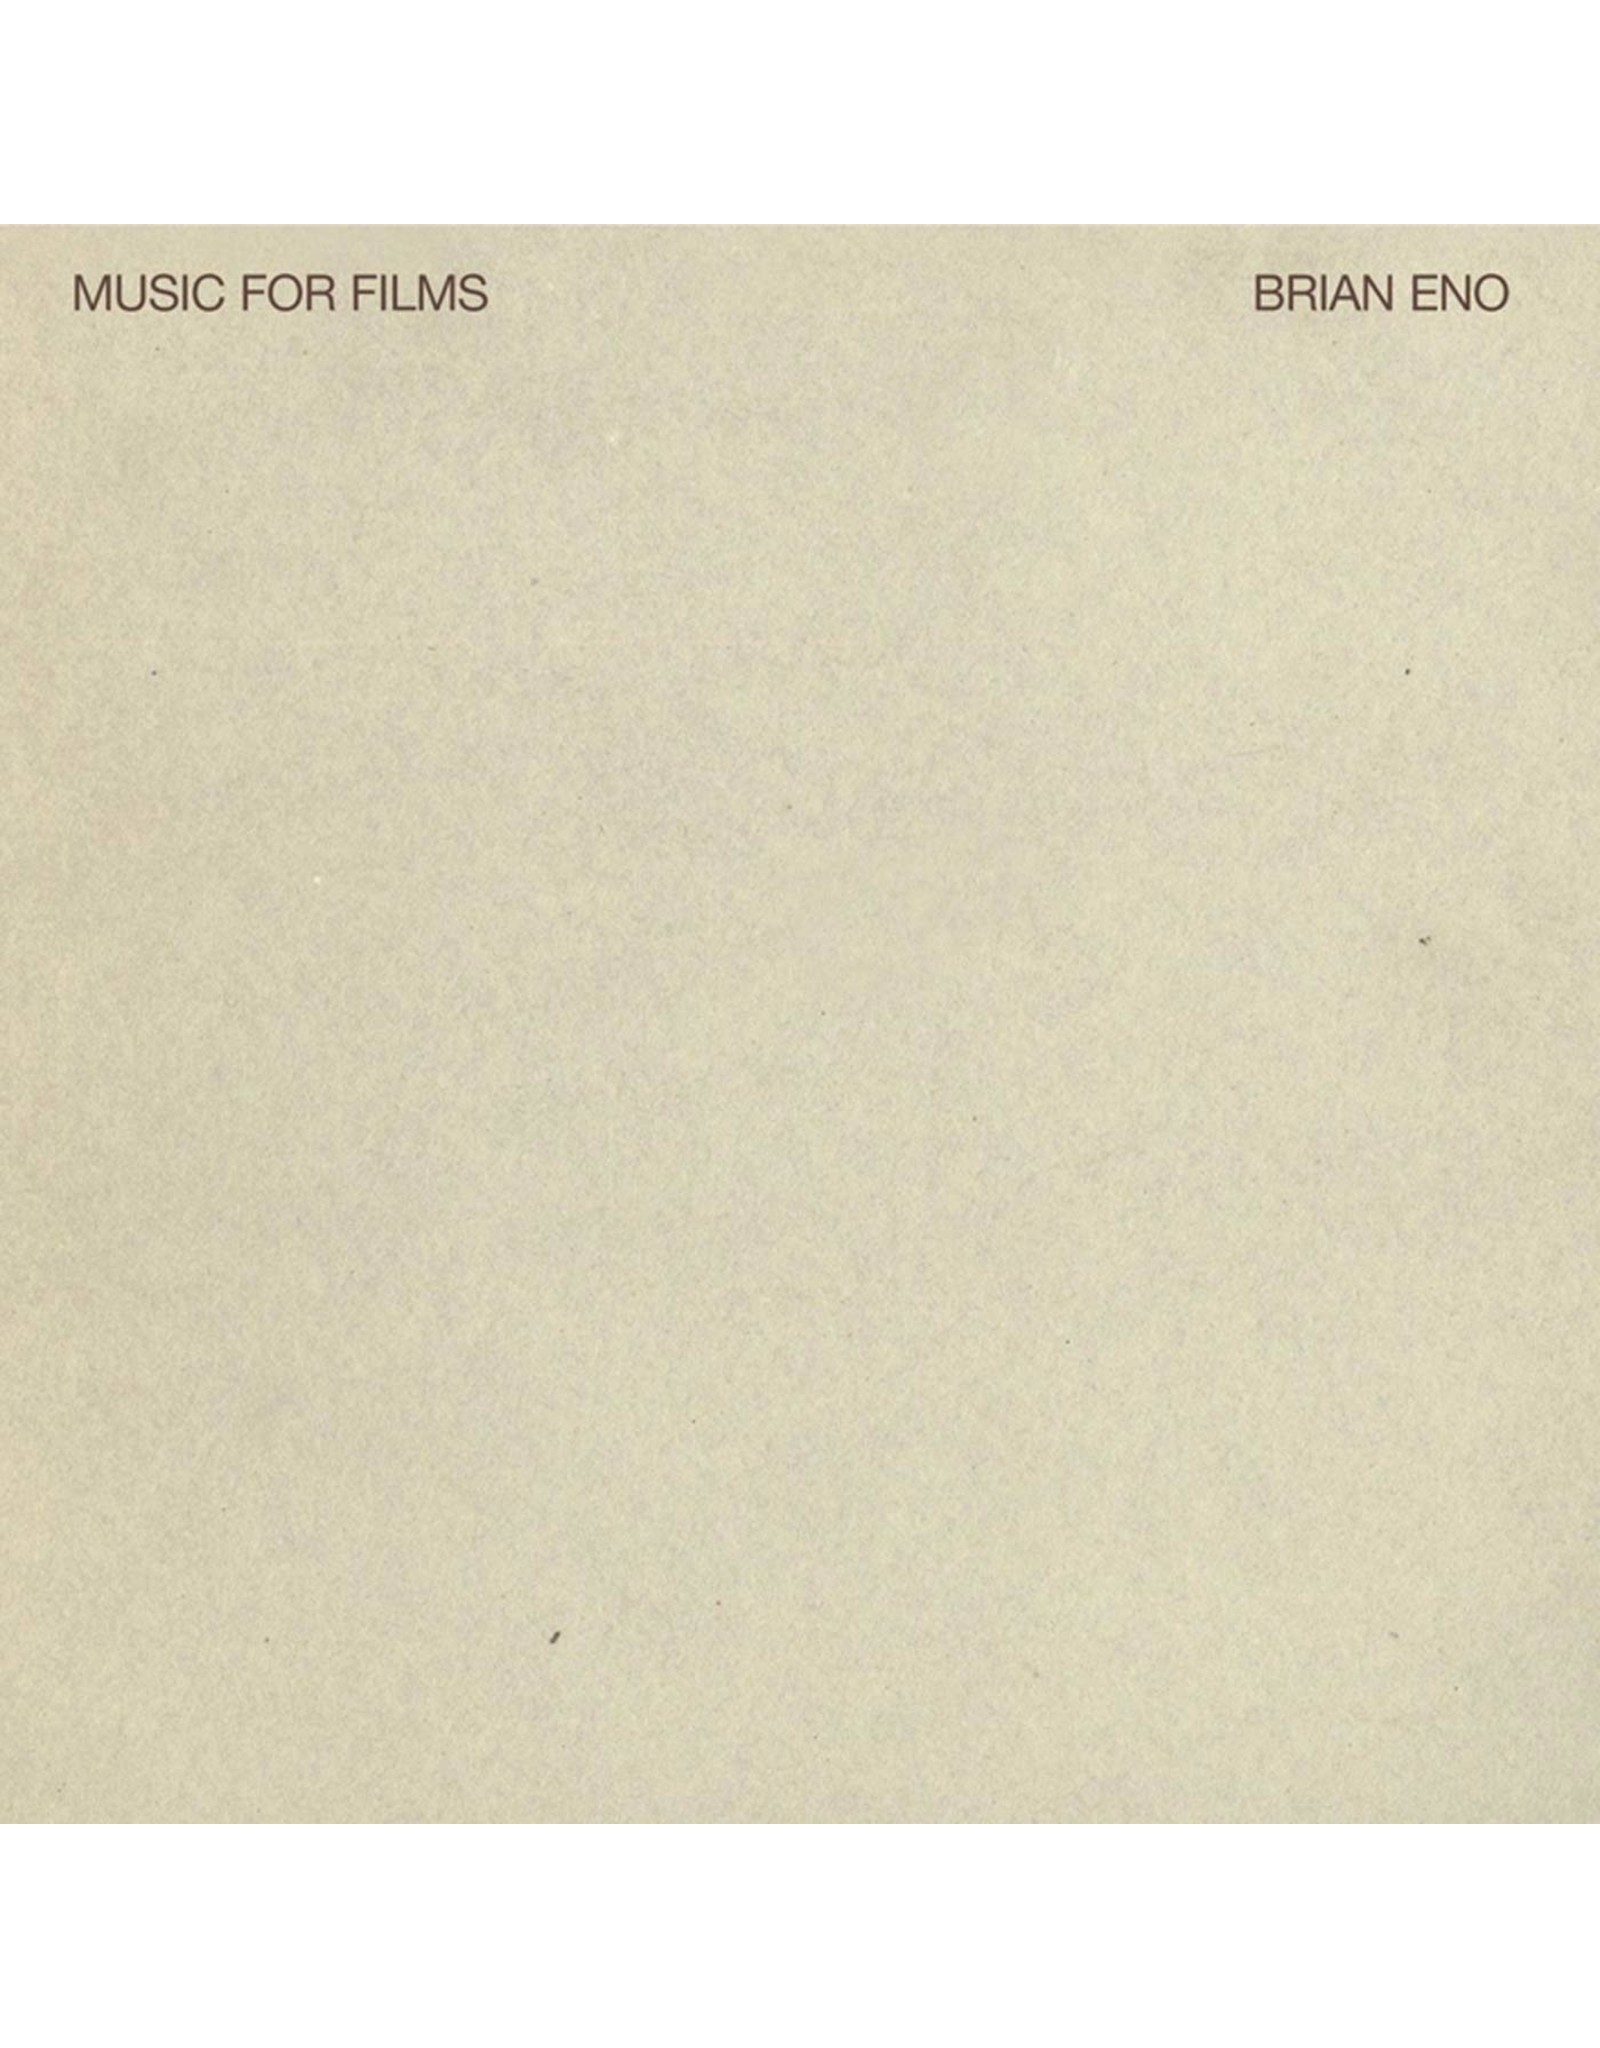 New Vinyl Brian Eno - Music For Films LP